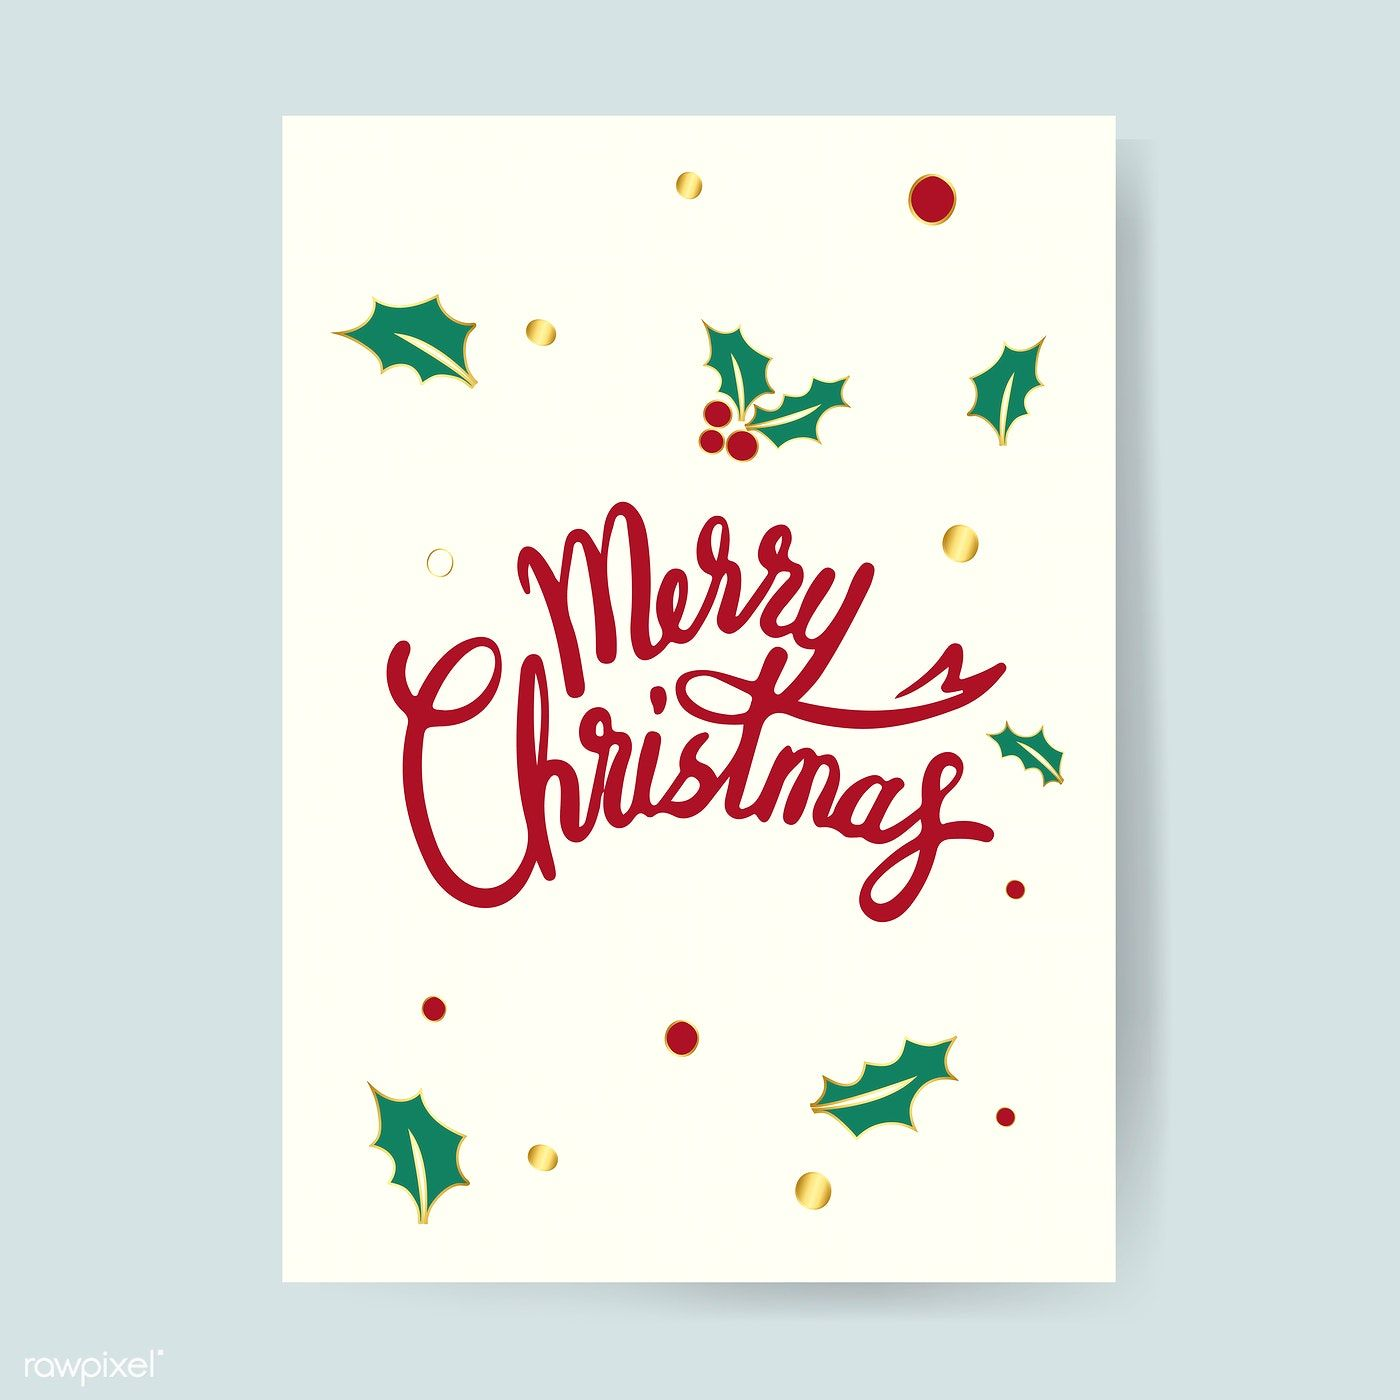 Merry Christmas Card Design Vector Free Image By Rawpixel Com Busbus Christmas Card Design Merry Christmas Card Design Creative Christmas Cards